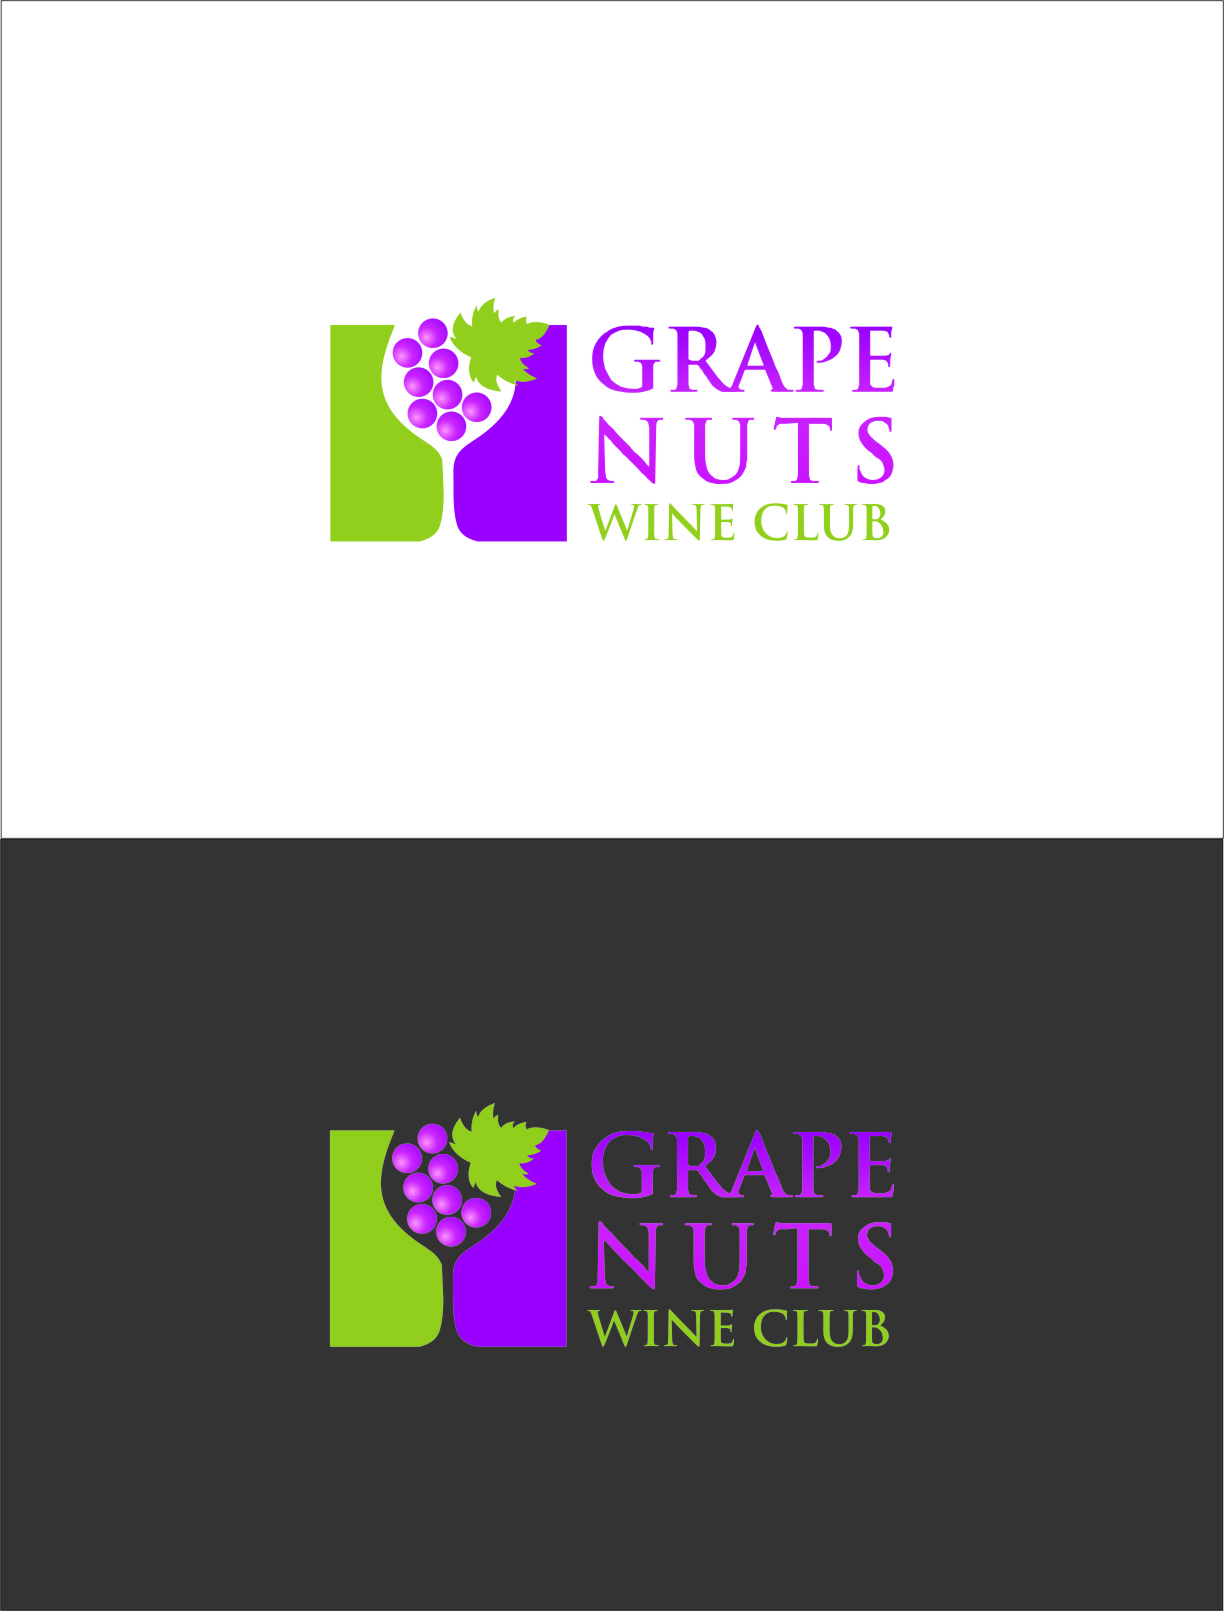 Logo Design by Ngepet_art - Entry No. 102 in the Logo Design Contest Artistic Logo Design for Grape Nuts Wine Club.